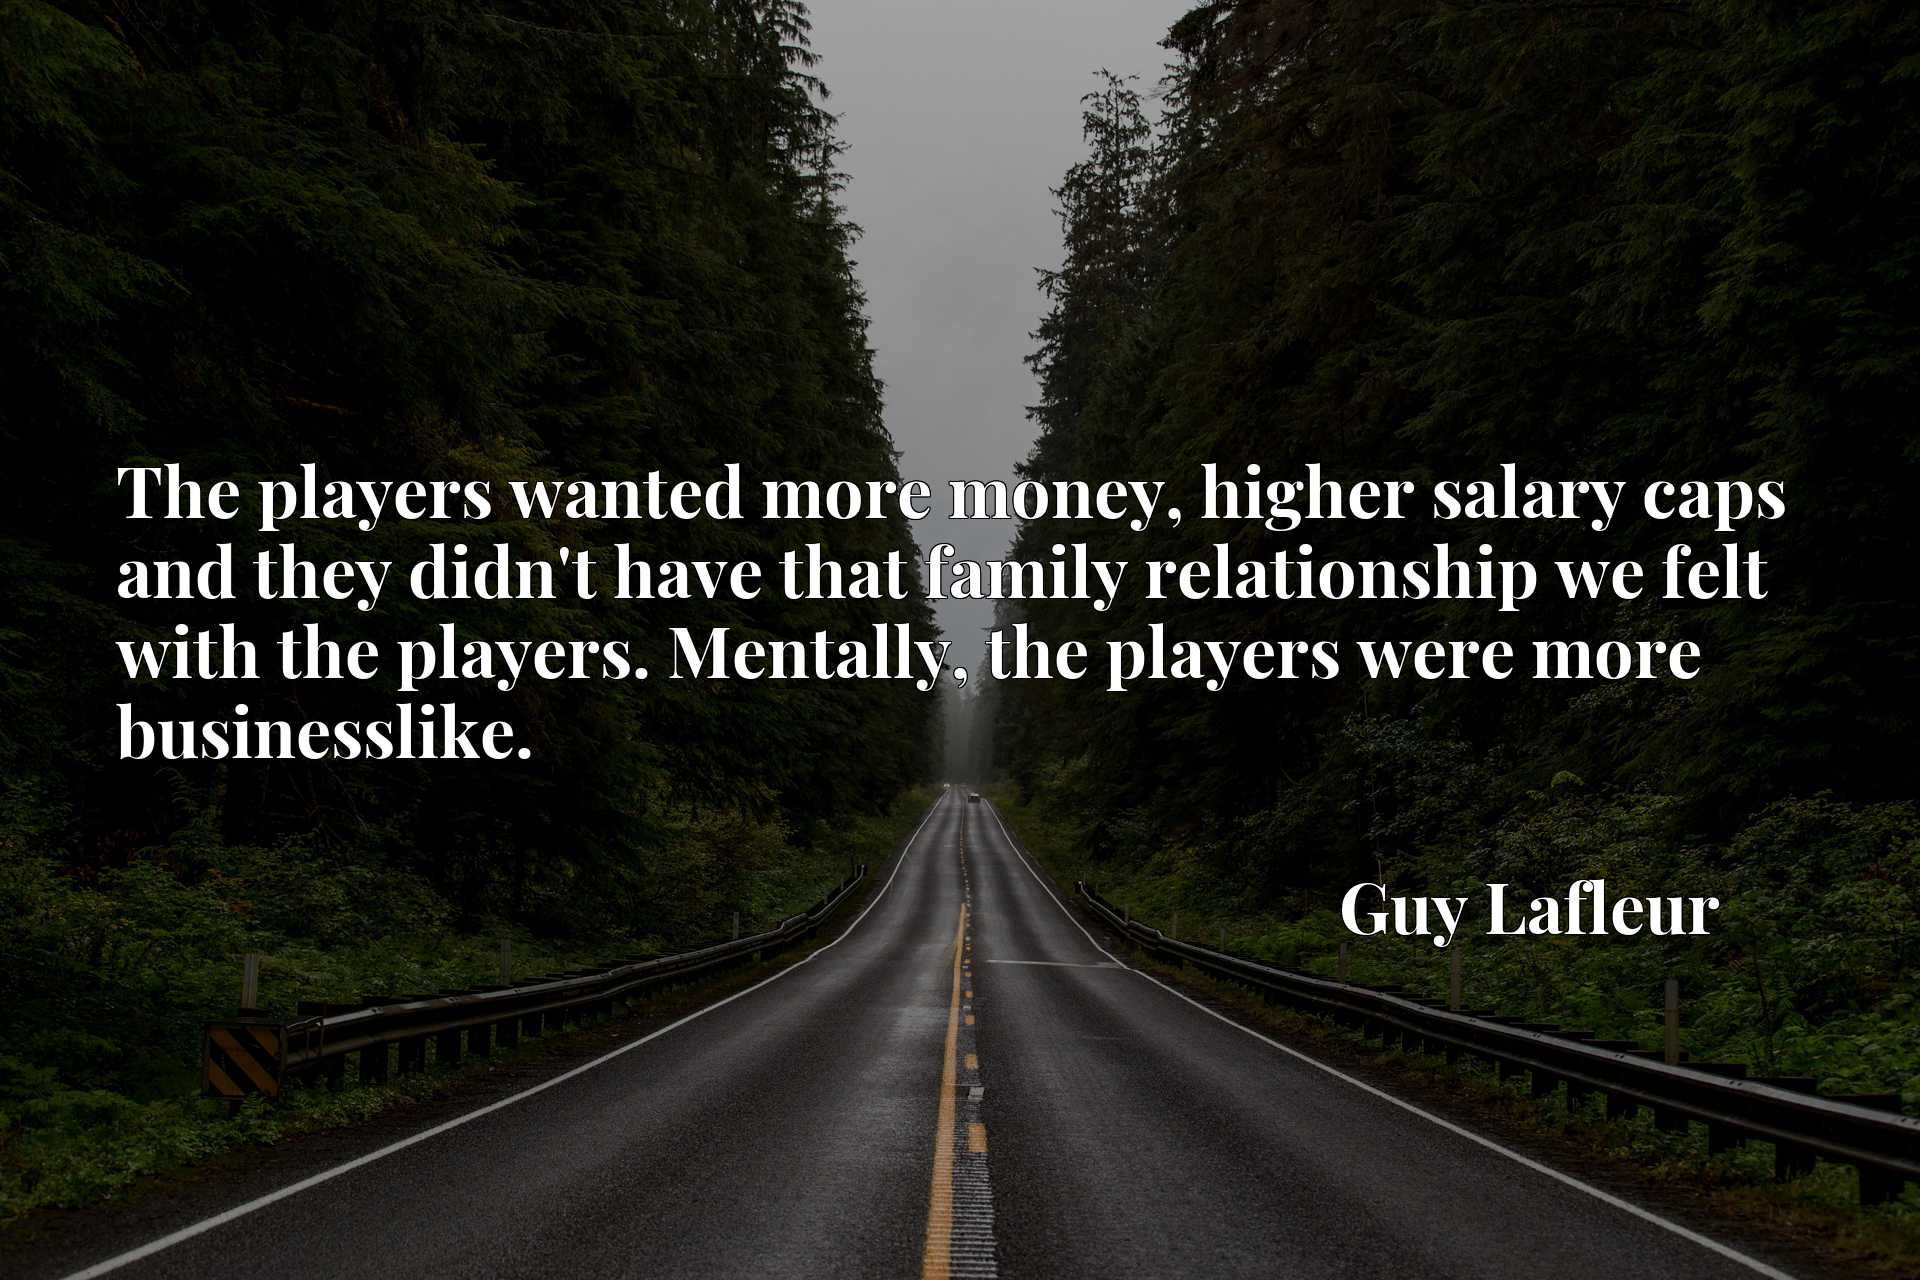 The players wanted more money, higher salary caps and they didn't have that family relationship we felt with the players. Mentally, the players were more businesslike.